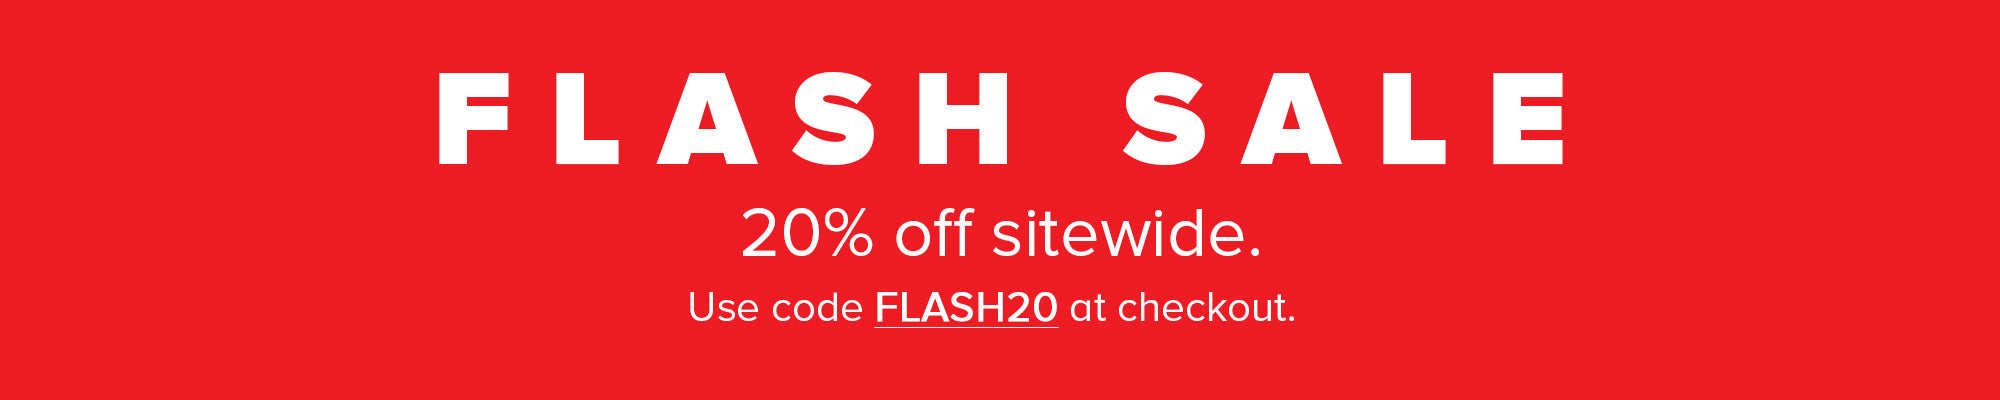 48 Hour Flash Sale - 20% OFF Sitewide